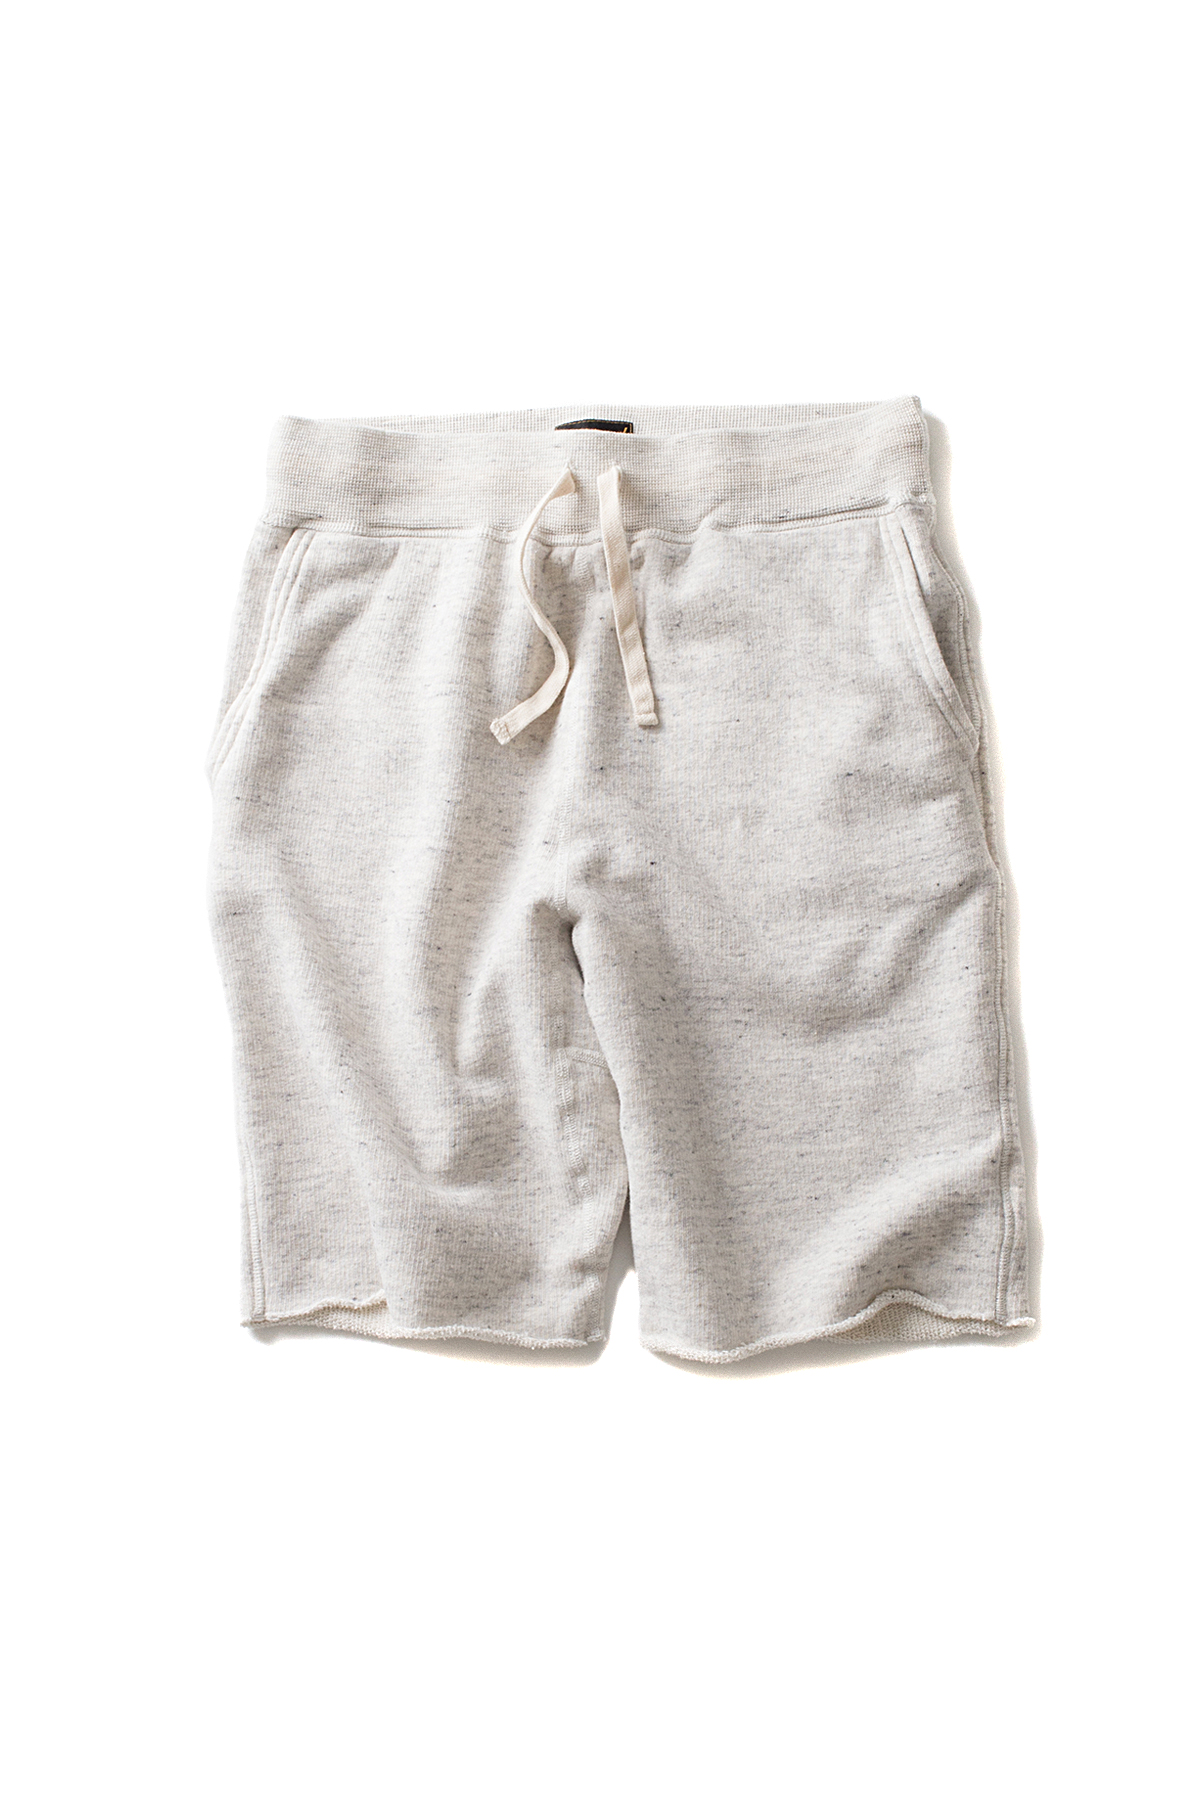 NAG : Gym Shorts (Oat Haze)